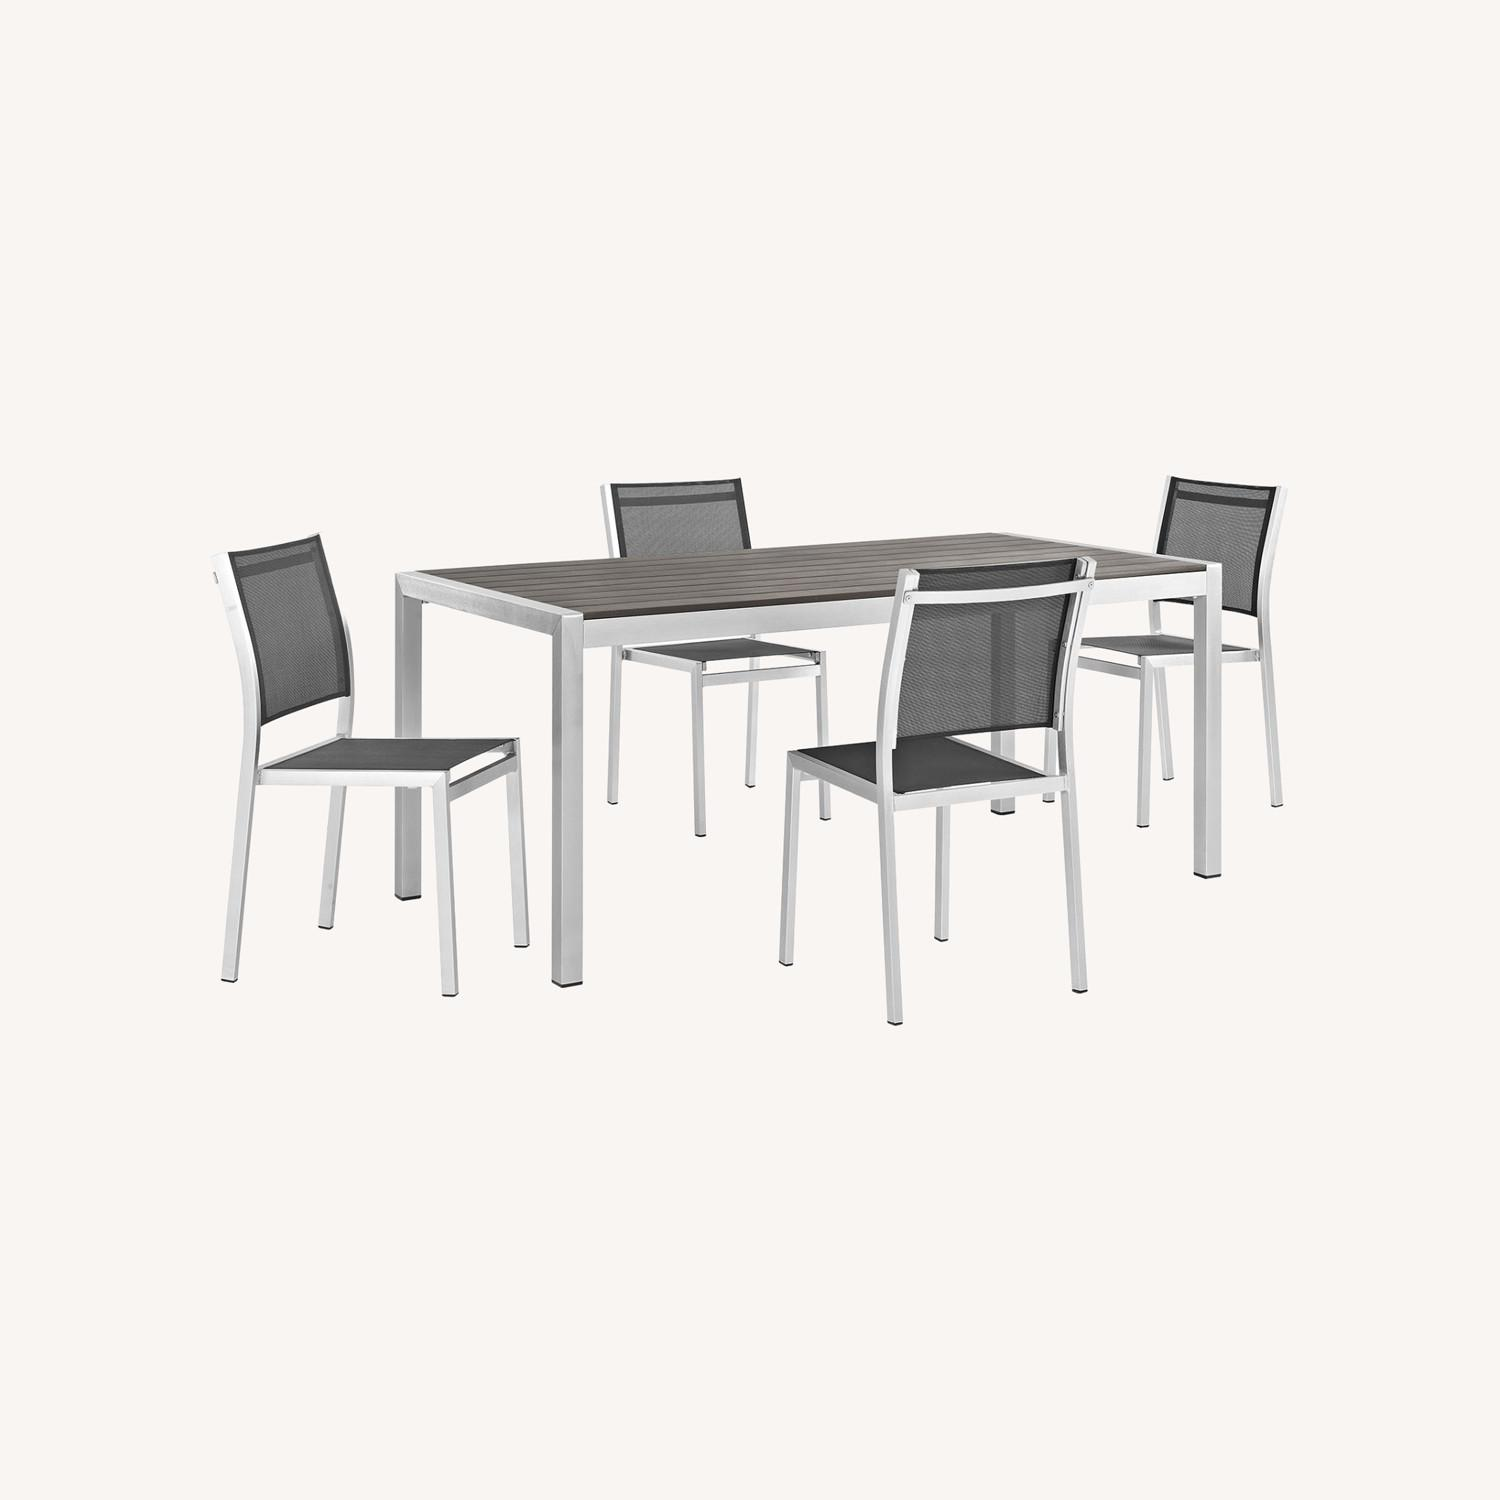 Modern 5-Piece Outdoor Dining Set In Black - image-6